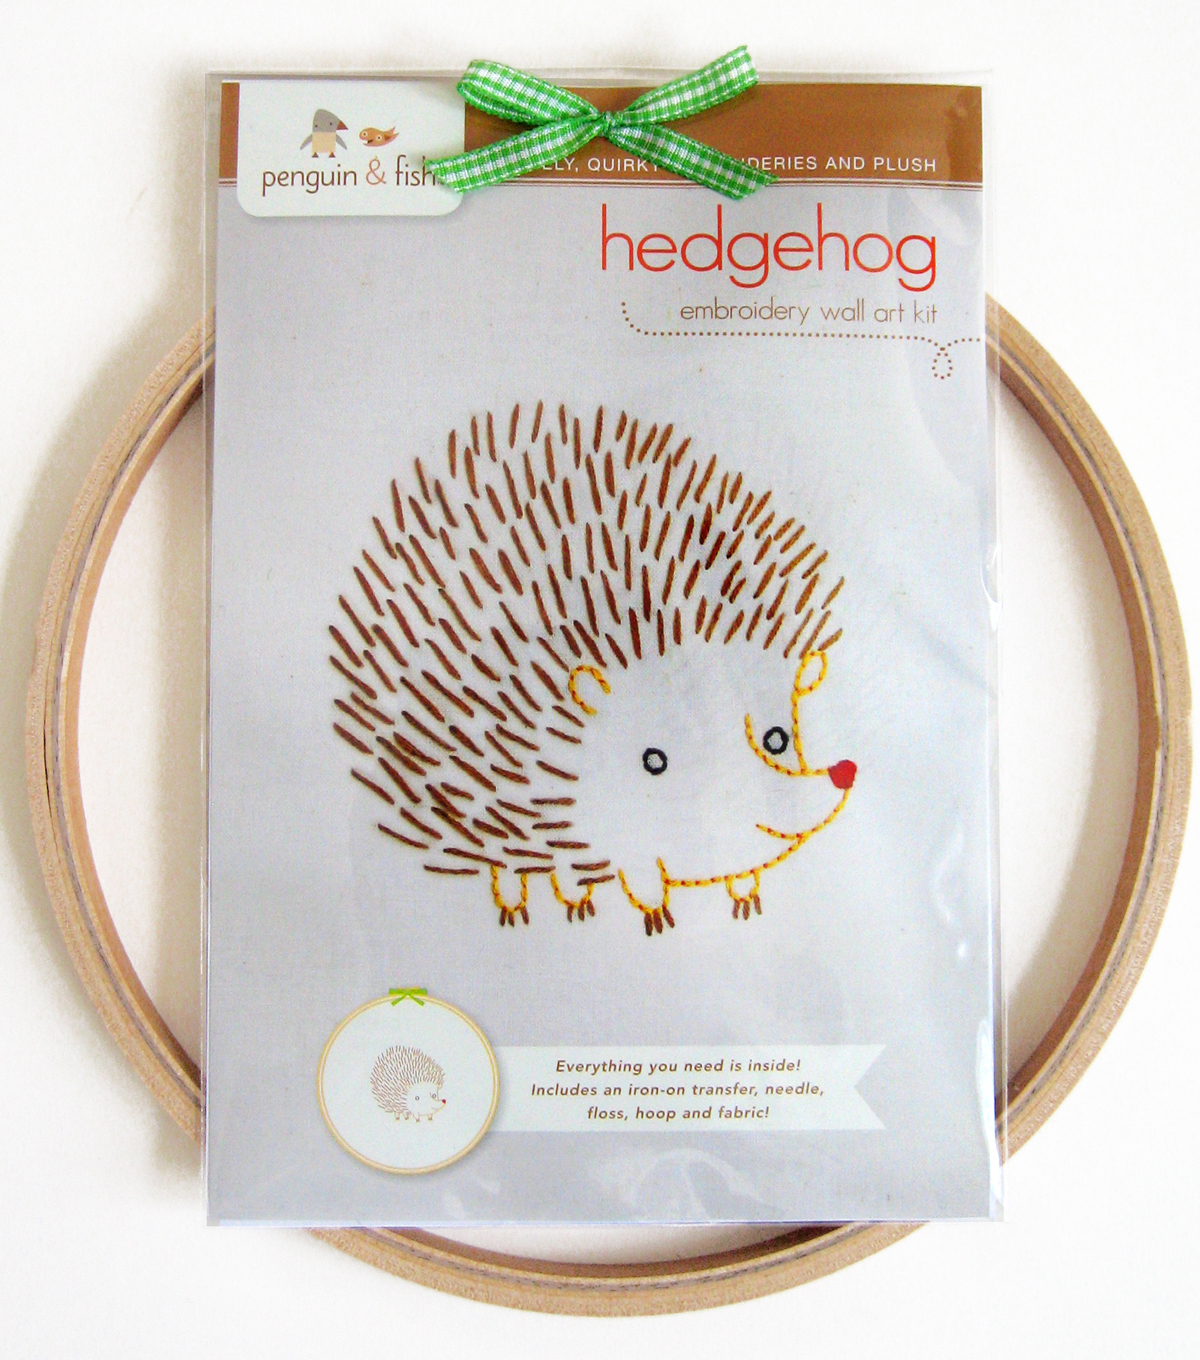 "Penguin & Fish Embroidery Kits 8"" Round Stitched In Floss-Hedgehog"